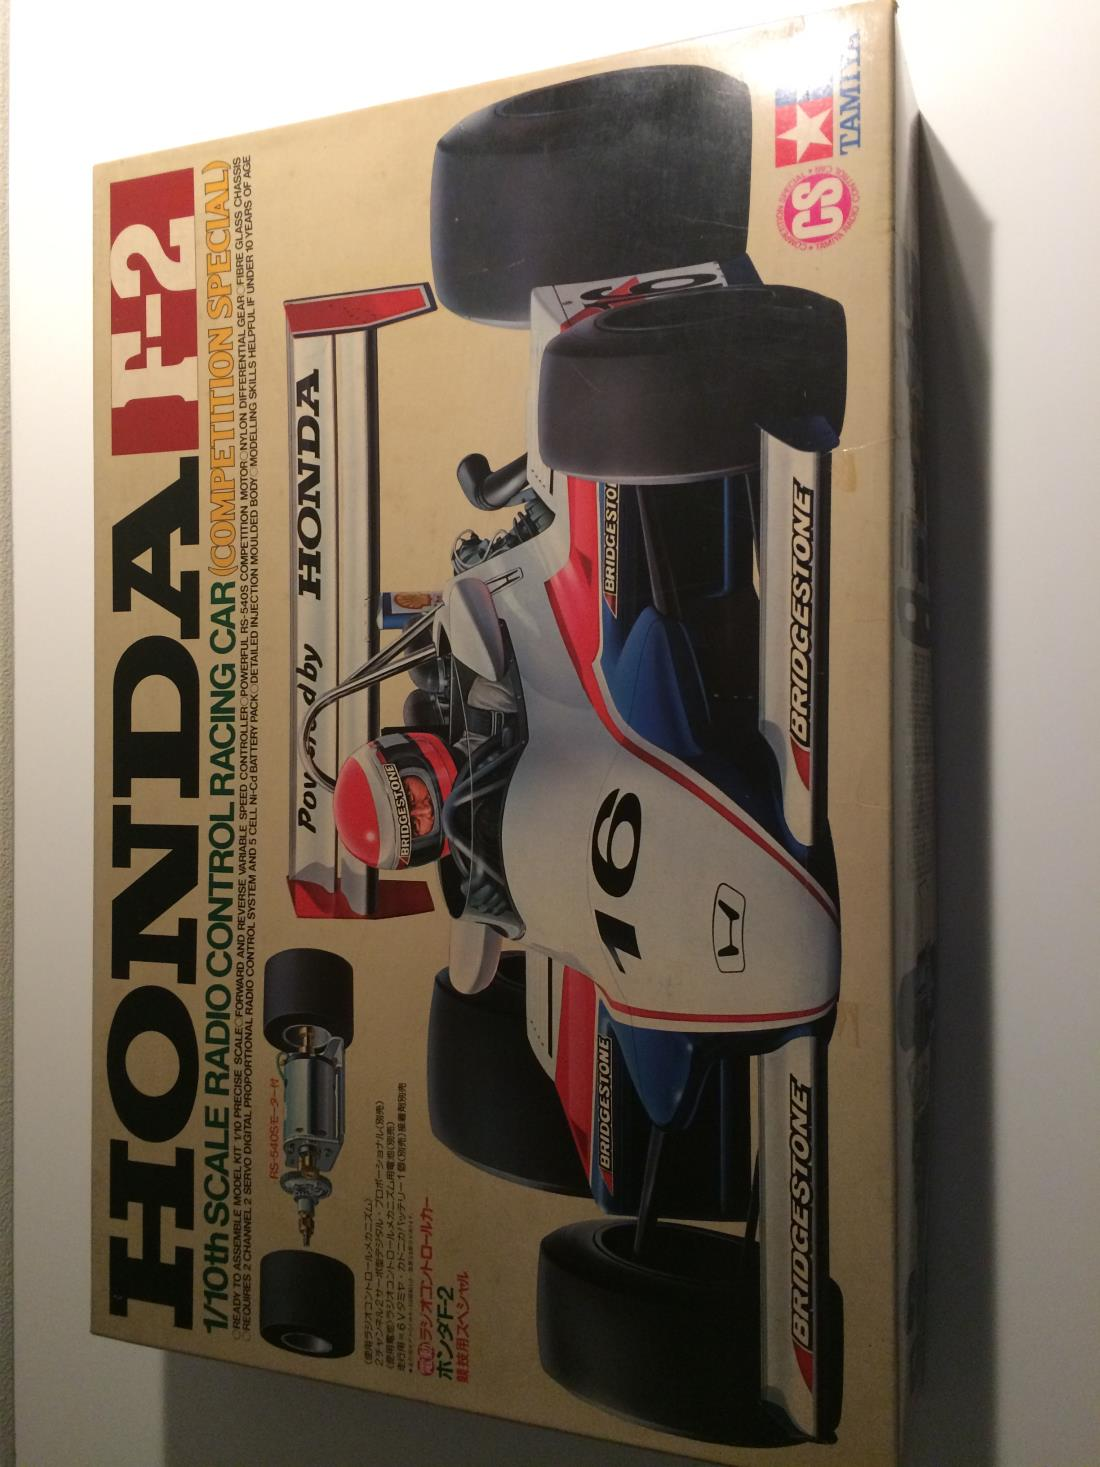 58030: Honda Formula 02 (CS) from Zidane showroom, A hard to